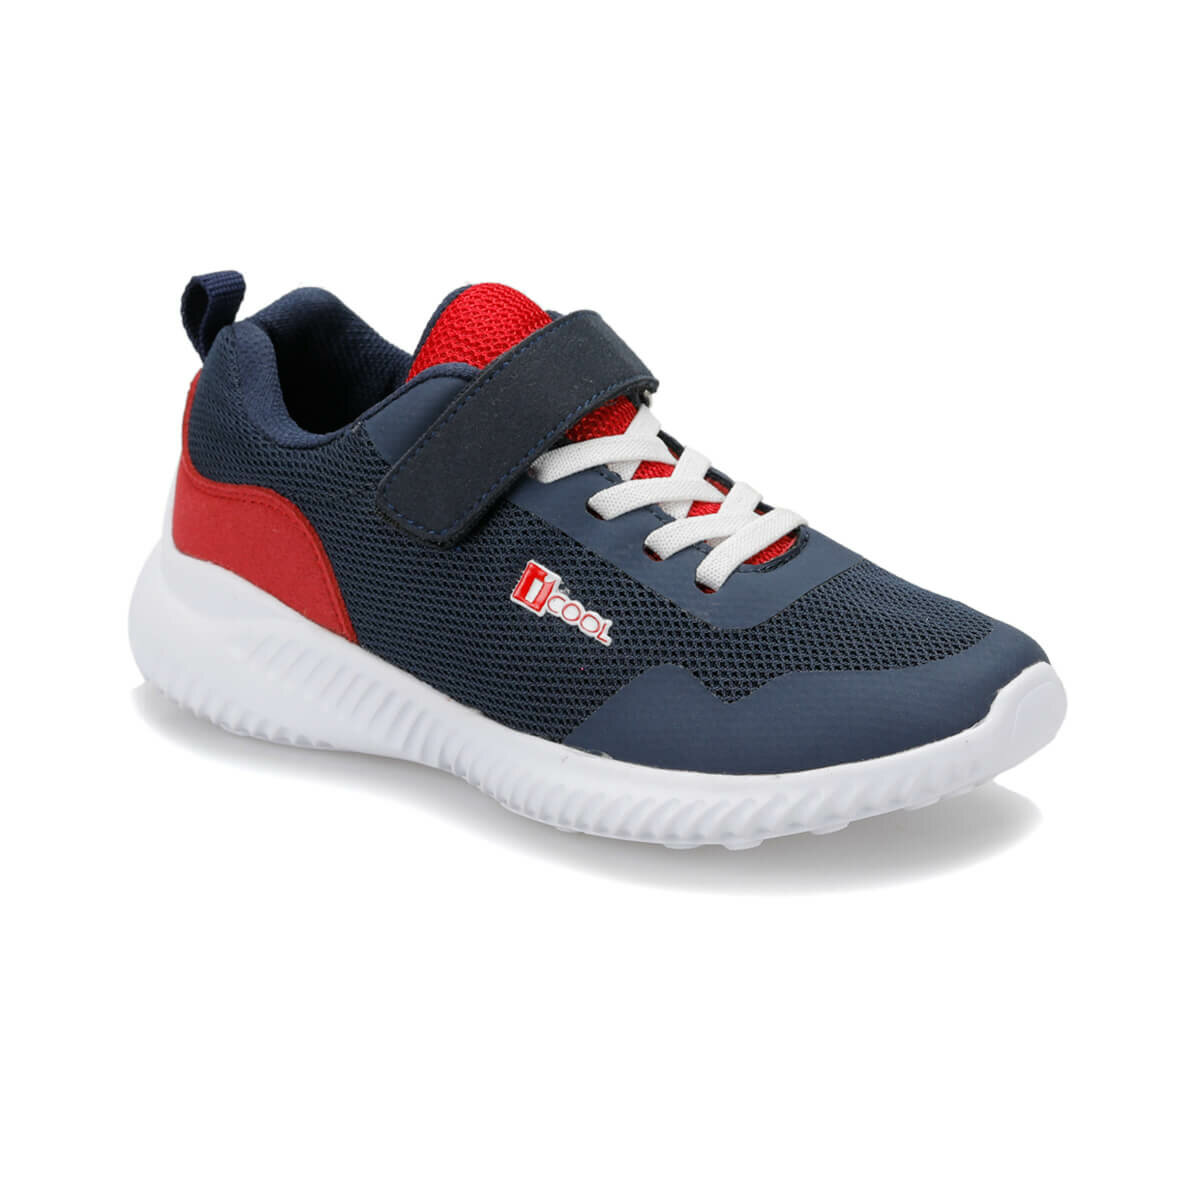 FLO CUBA Navy Blue Male Child Hiking Shoes I-Cool